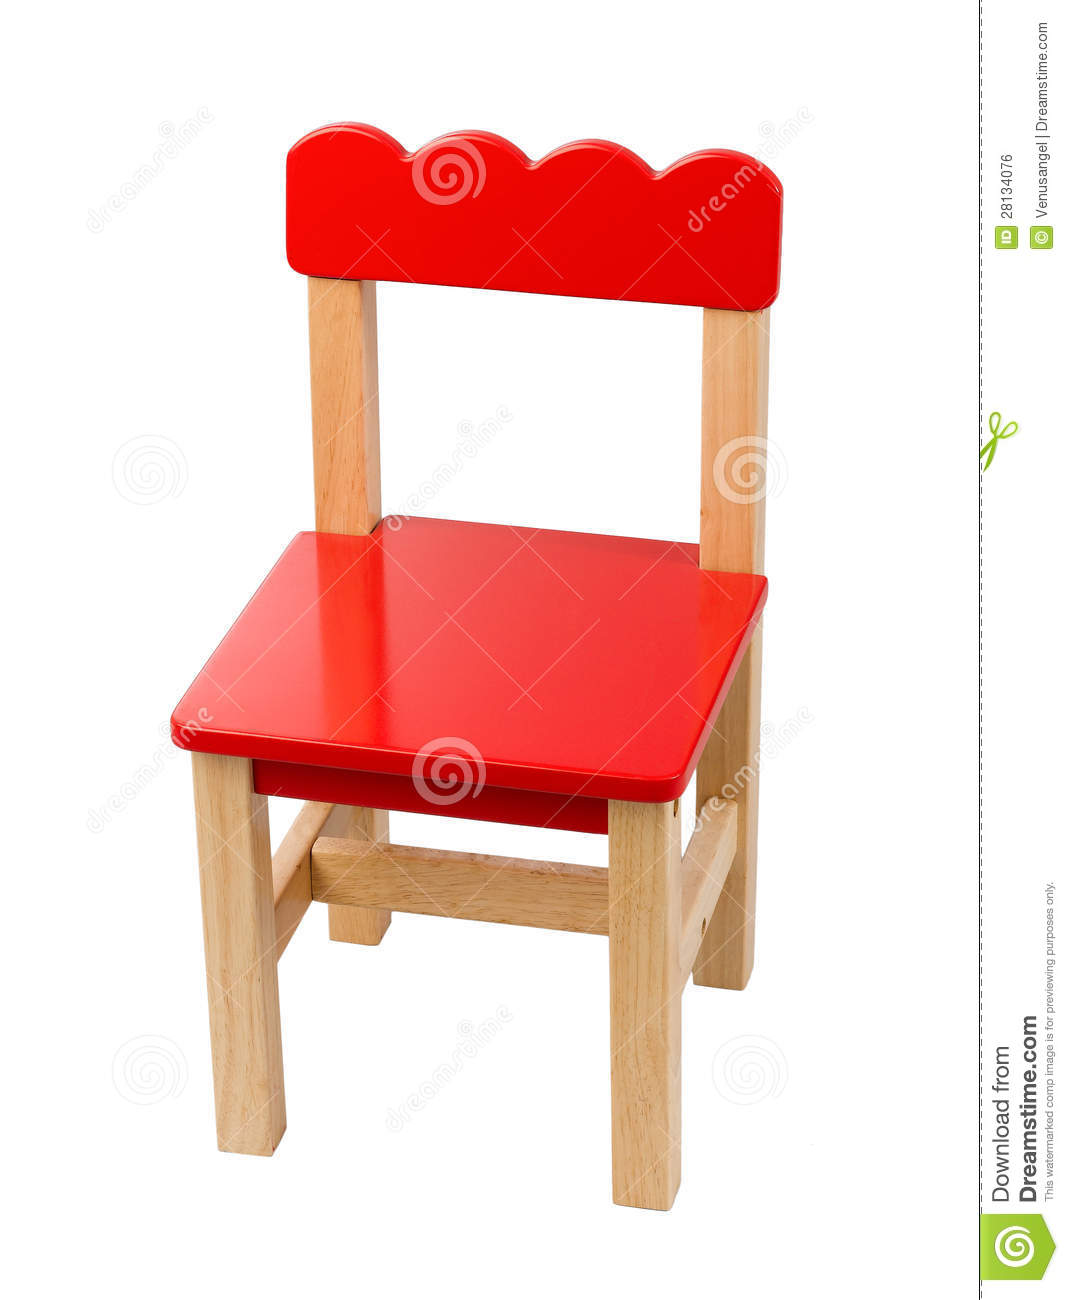 Cute small chair royalty free stock image image 28134076 for Small cute chairs